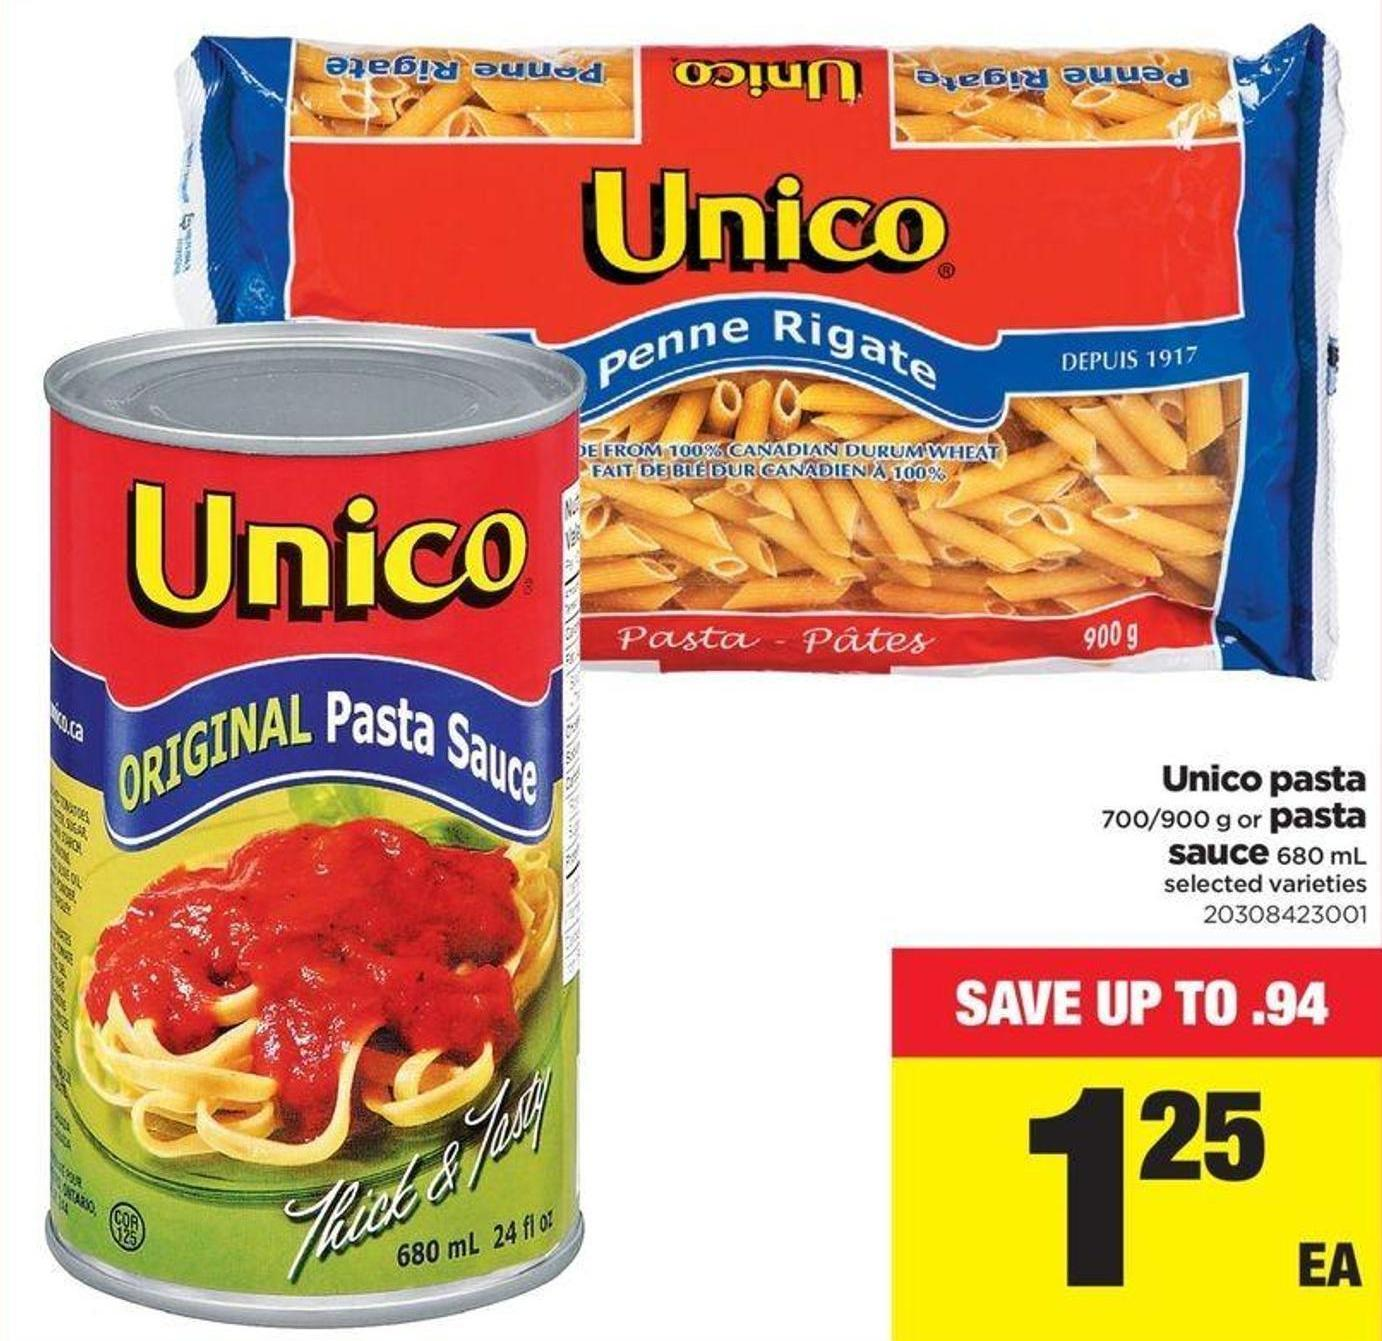 Unico Pasta - 700/900 G Or Pasta Sauce - 680 Ml